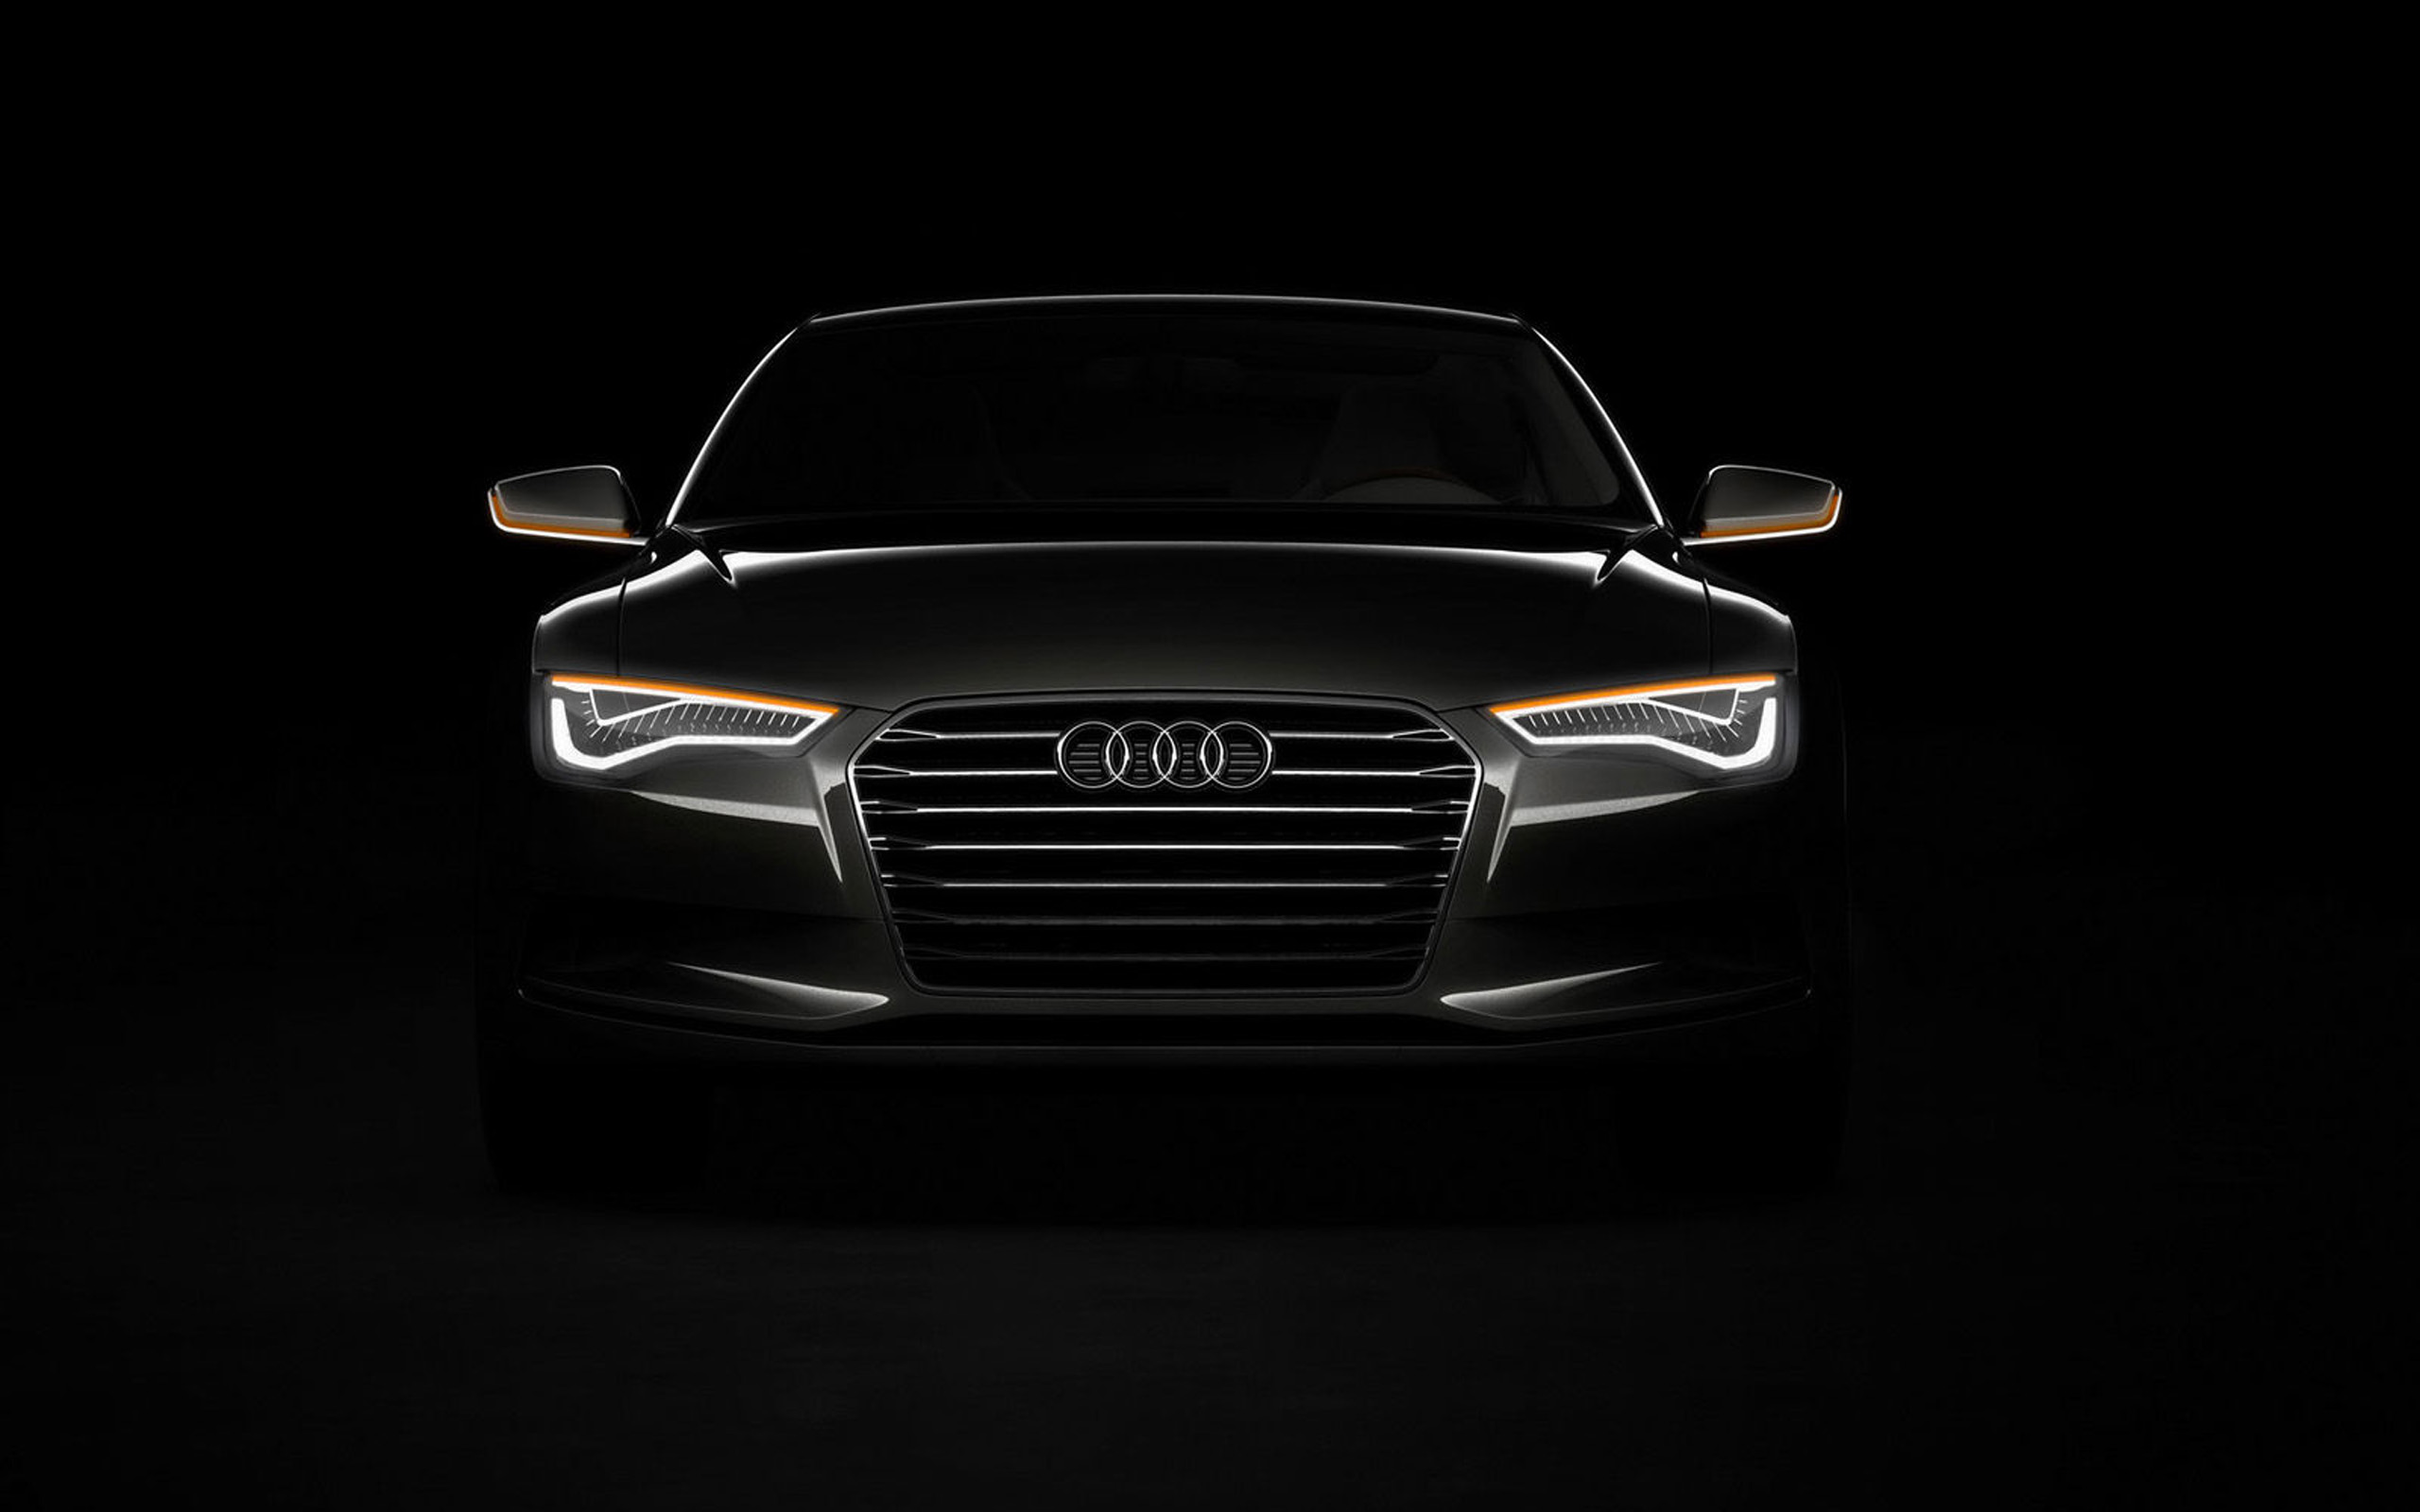 Wallpapers Of The Day Audi 2560x1600 Audi Photos 2560x1600